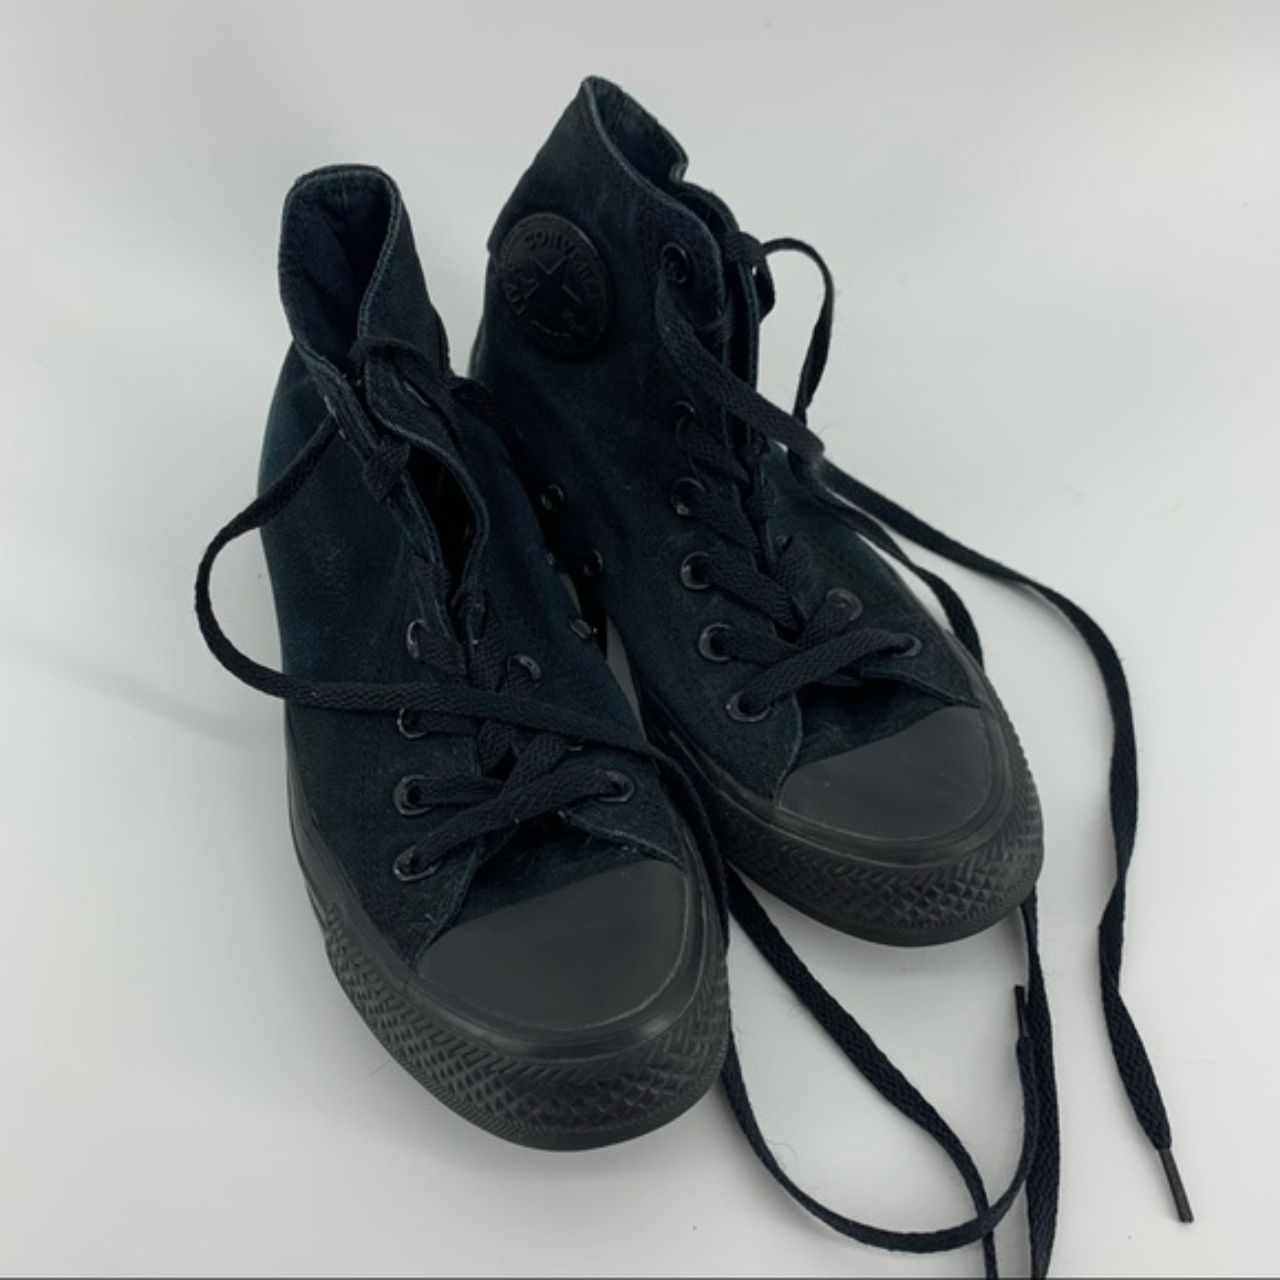 Product Image 1 - Converse sneakers. High tops shoes.